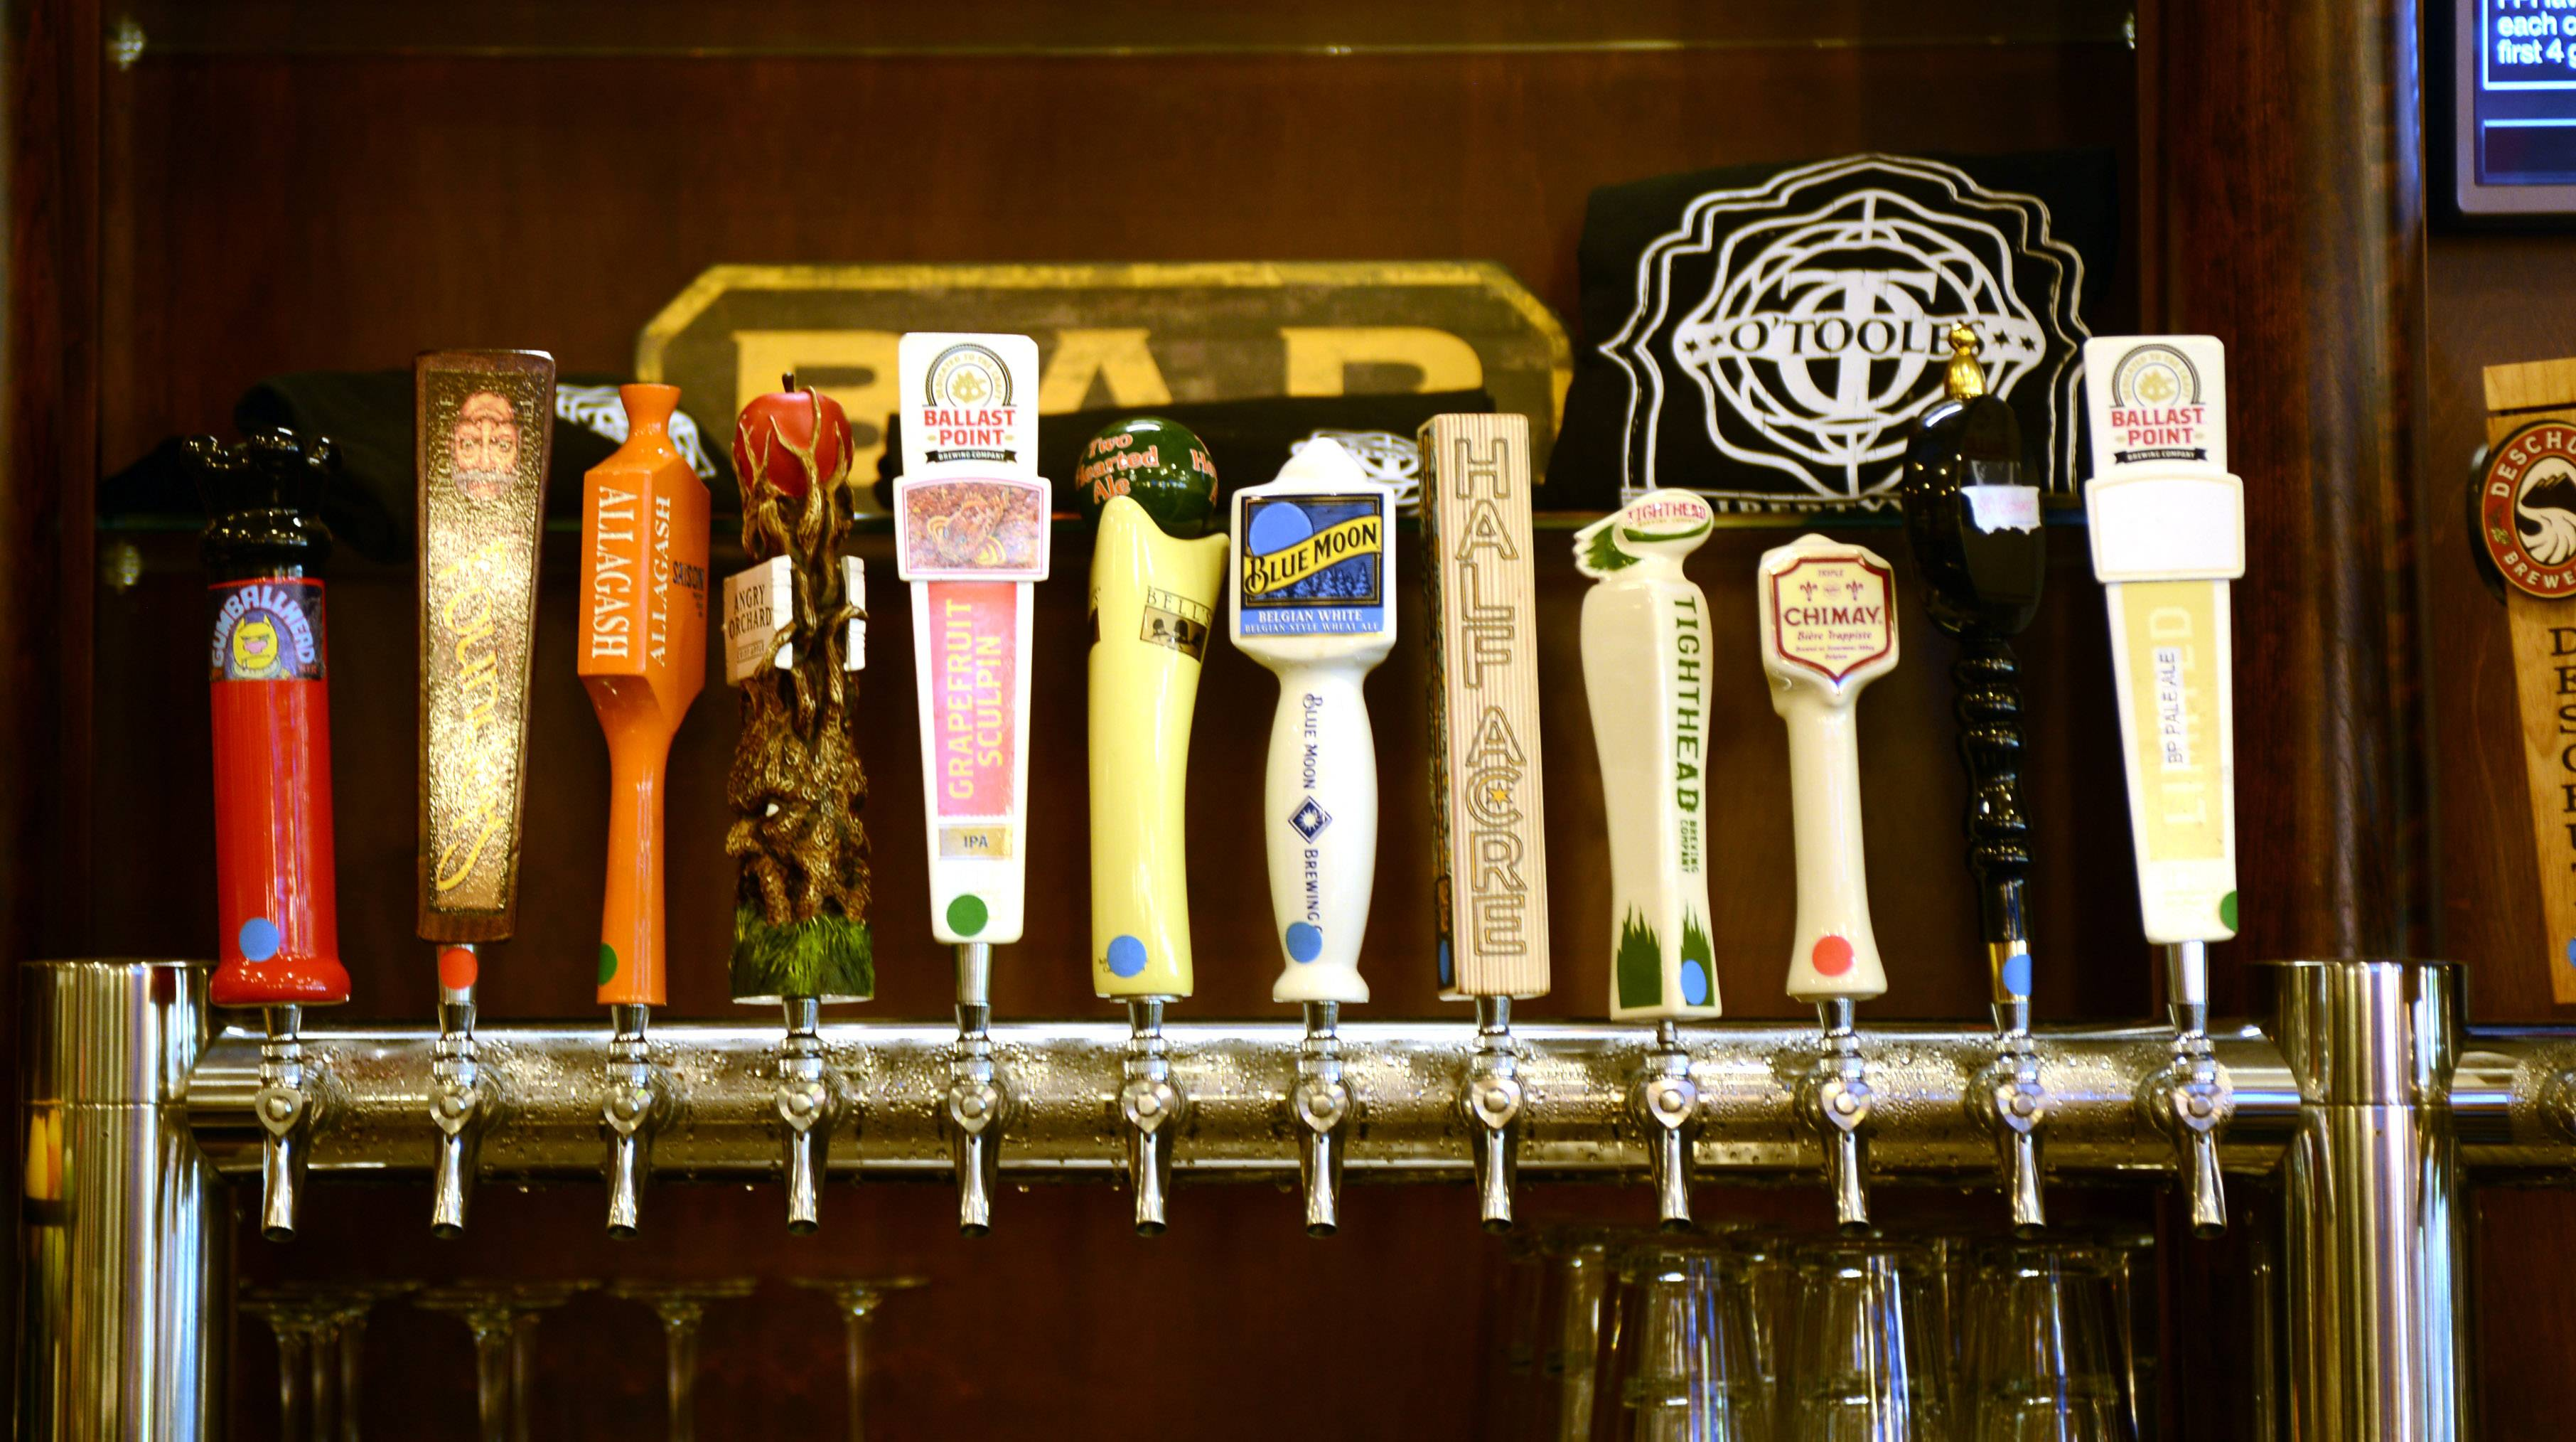 If you like beer, O'Toole's of Libertyville is the place to be with 48 beers on tap as well as 74 choices in bottles.